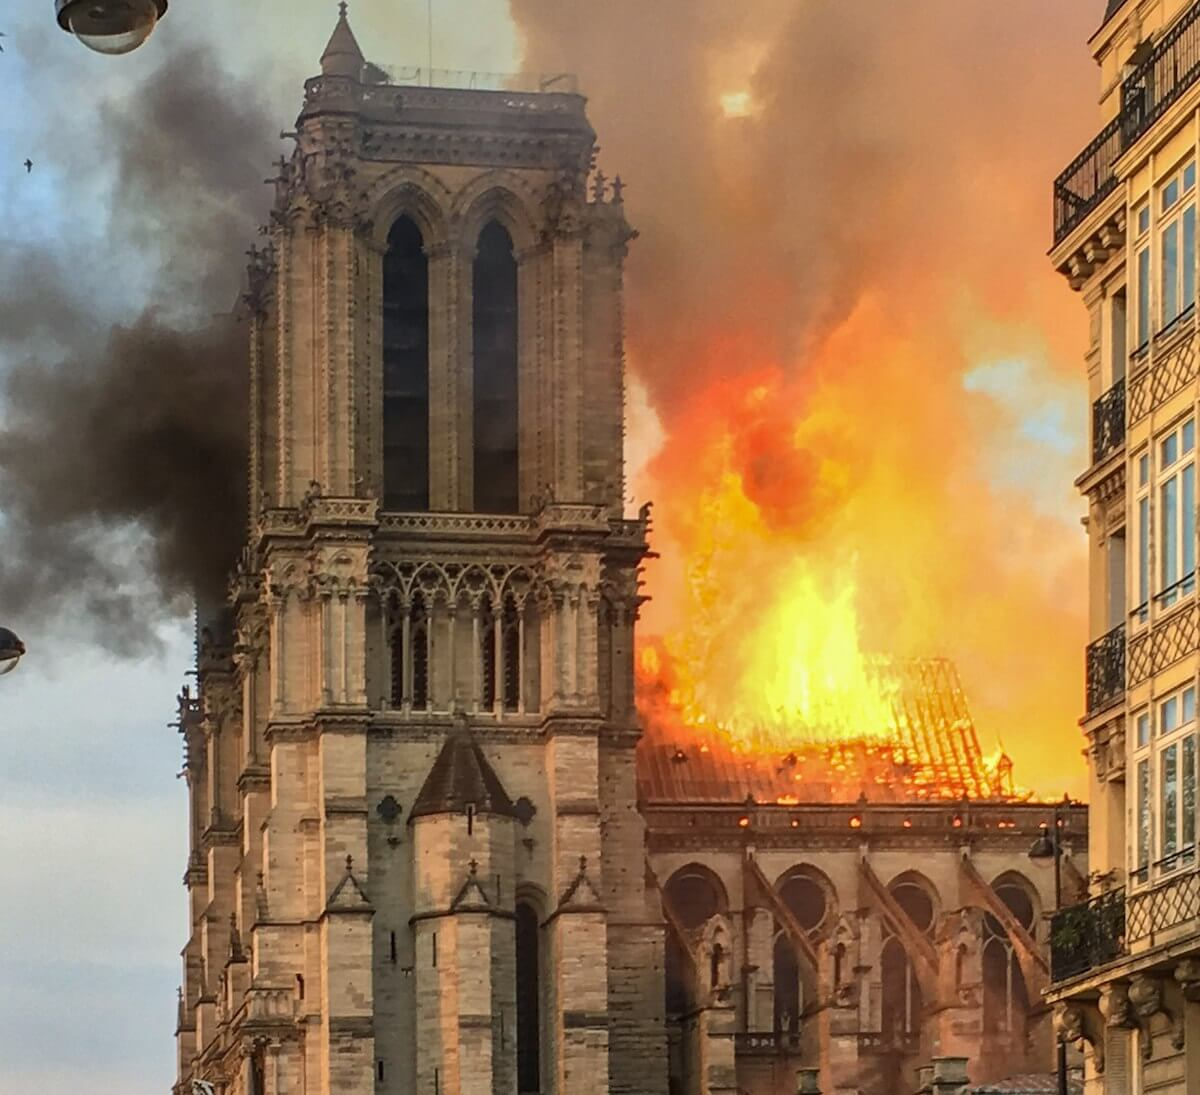 The Notre Dame Cathedral in Paris on fire, April 15, 2019. (Photo: LeLaisserPasserA38/Wikimedia)